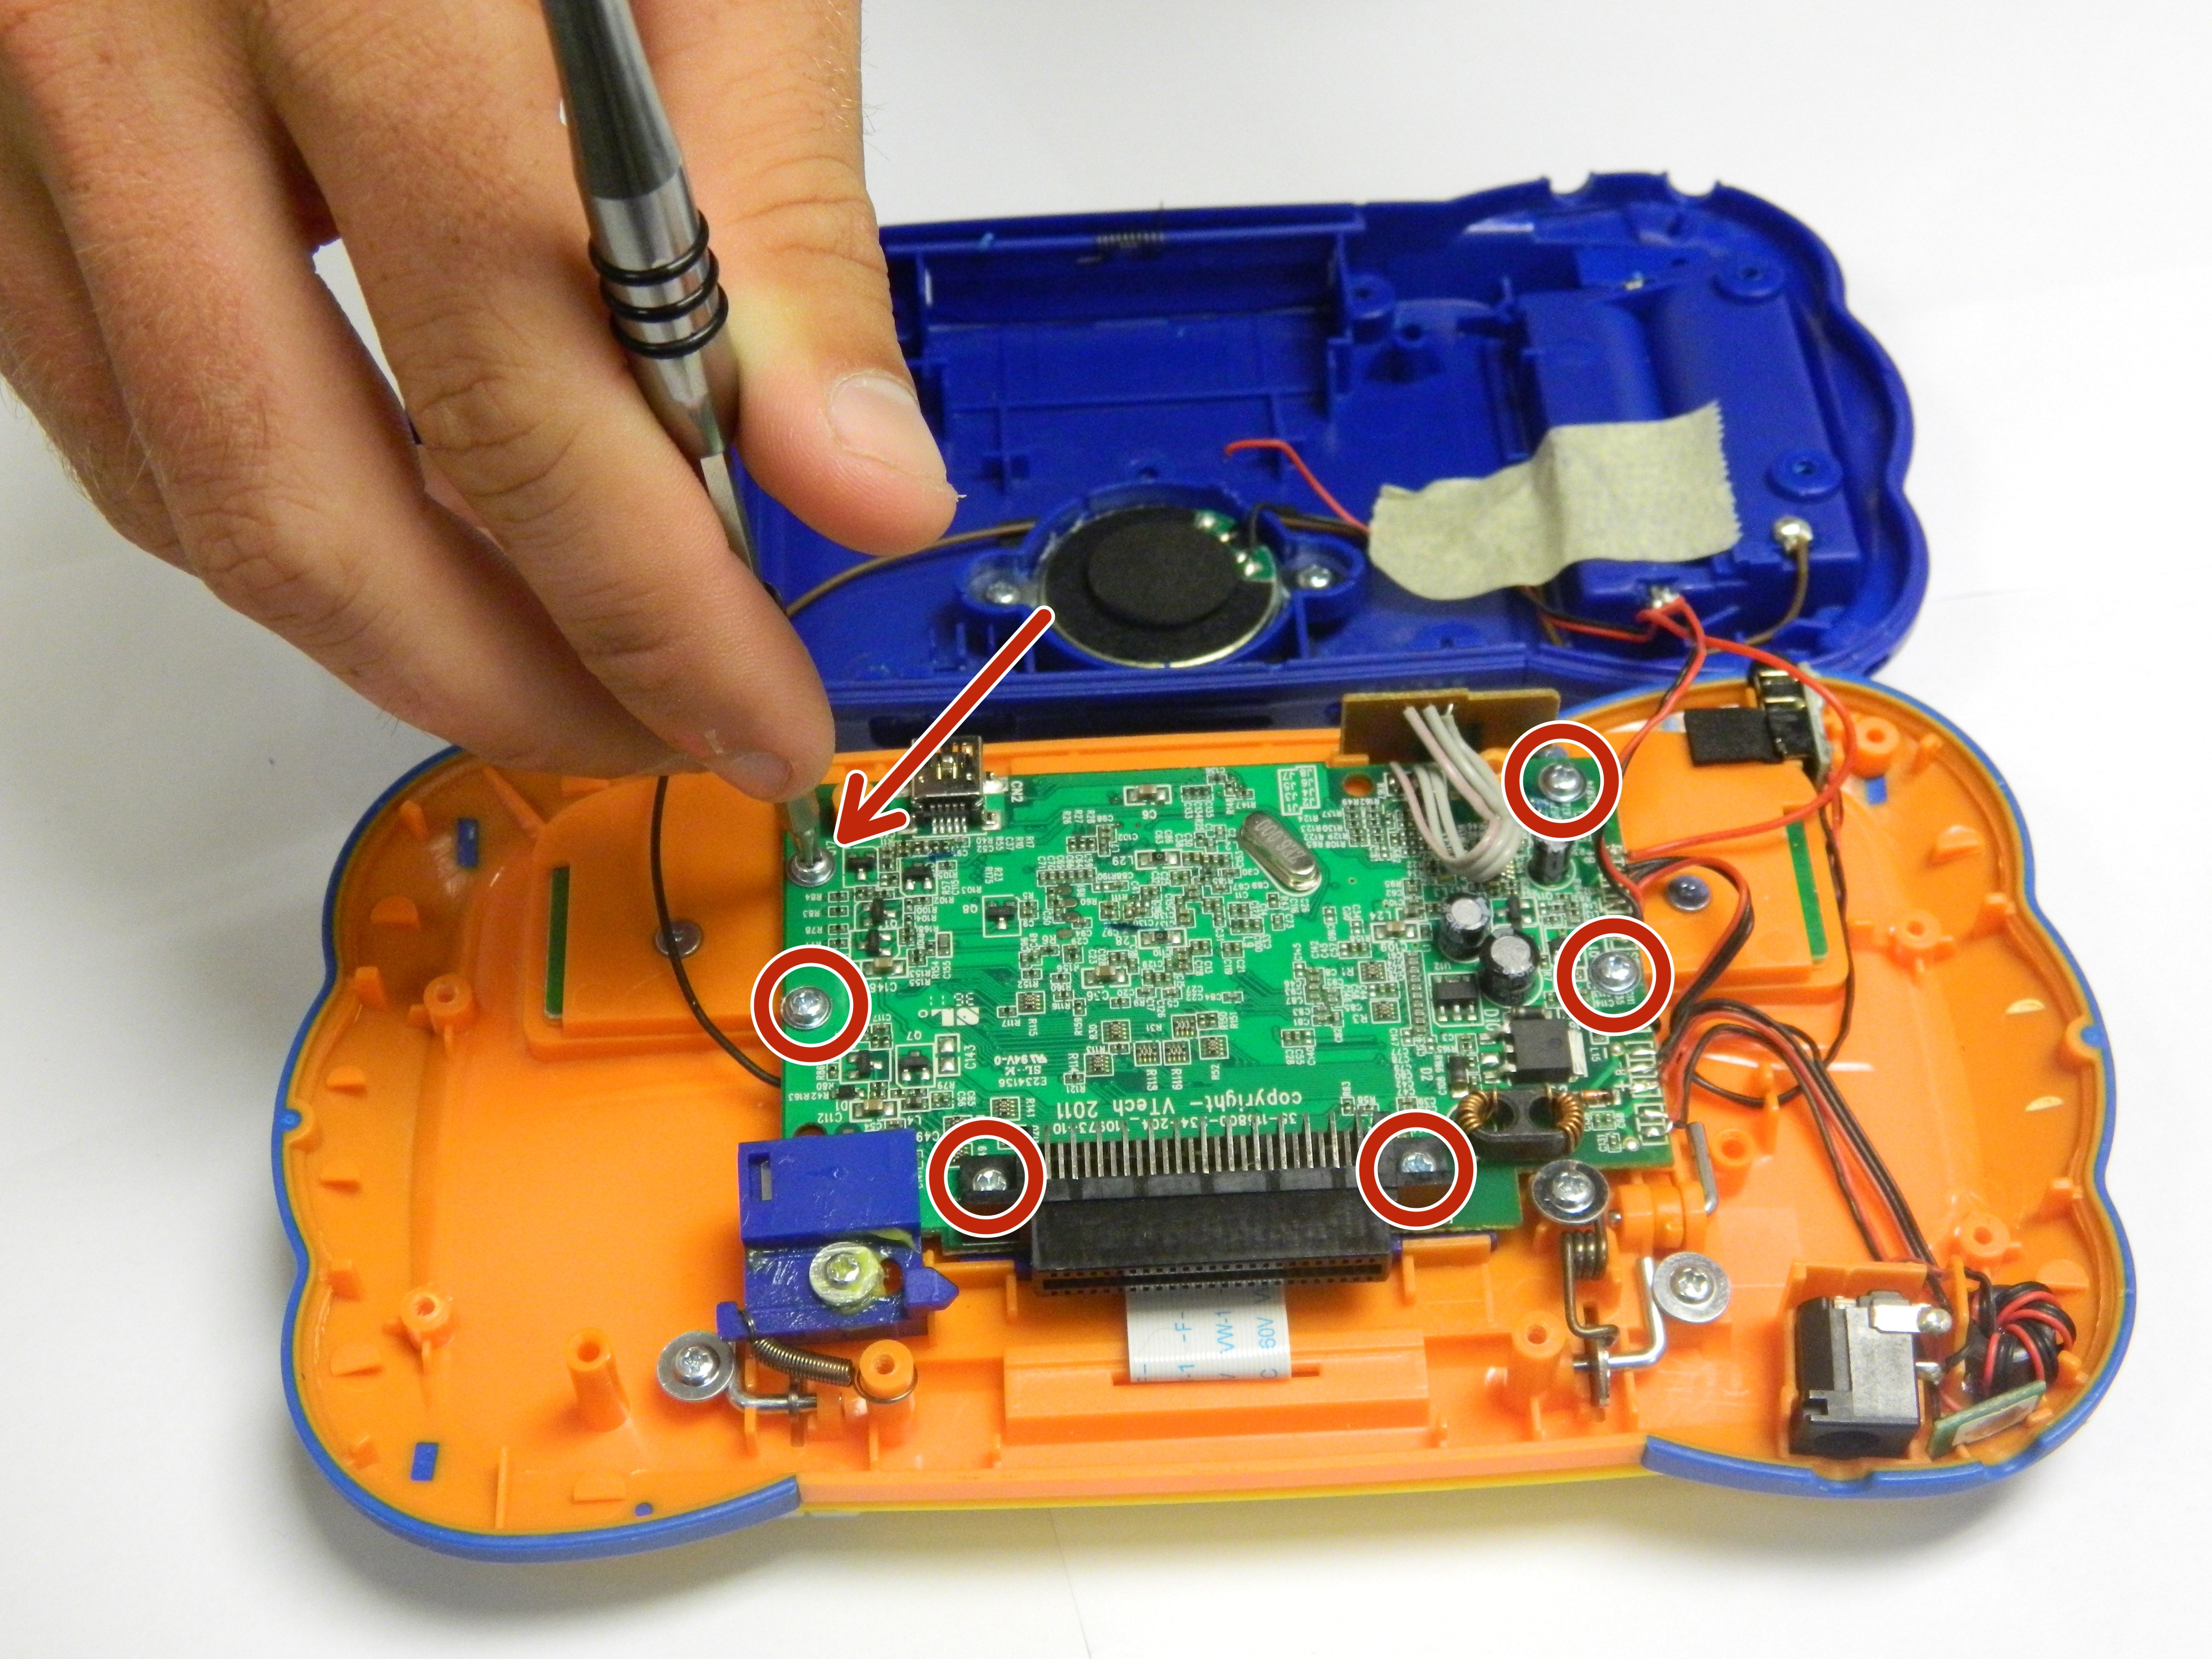 Disassembling Vtech Mobigo Touch Learning System Keyboard Ifixit Circuit Board Images Repair Guide